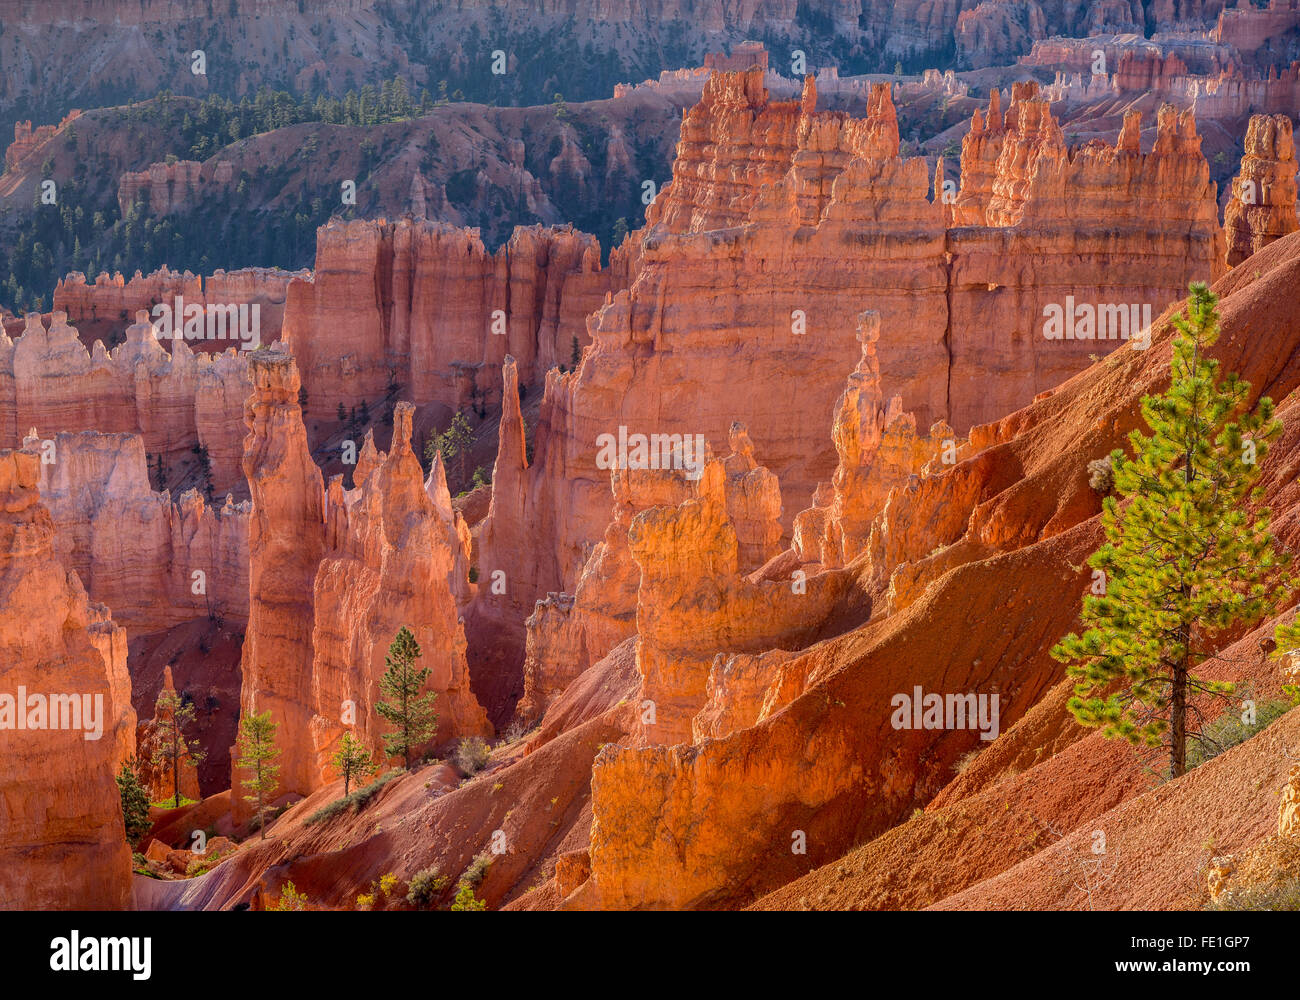 Bryce Canyon National Park, UT: Morning sun in the Bryce Amphitheater backlighting the hoodoos and sandstone pinnacles - Stock Image